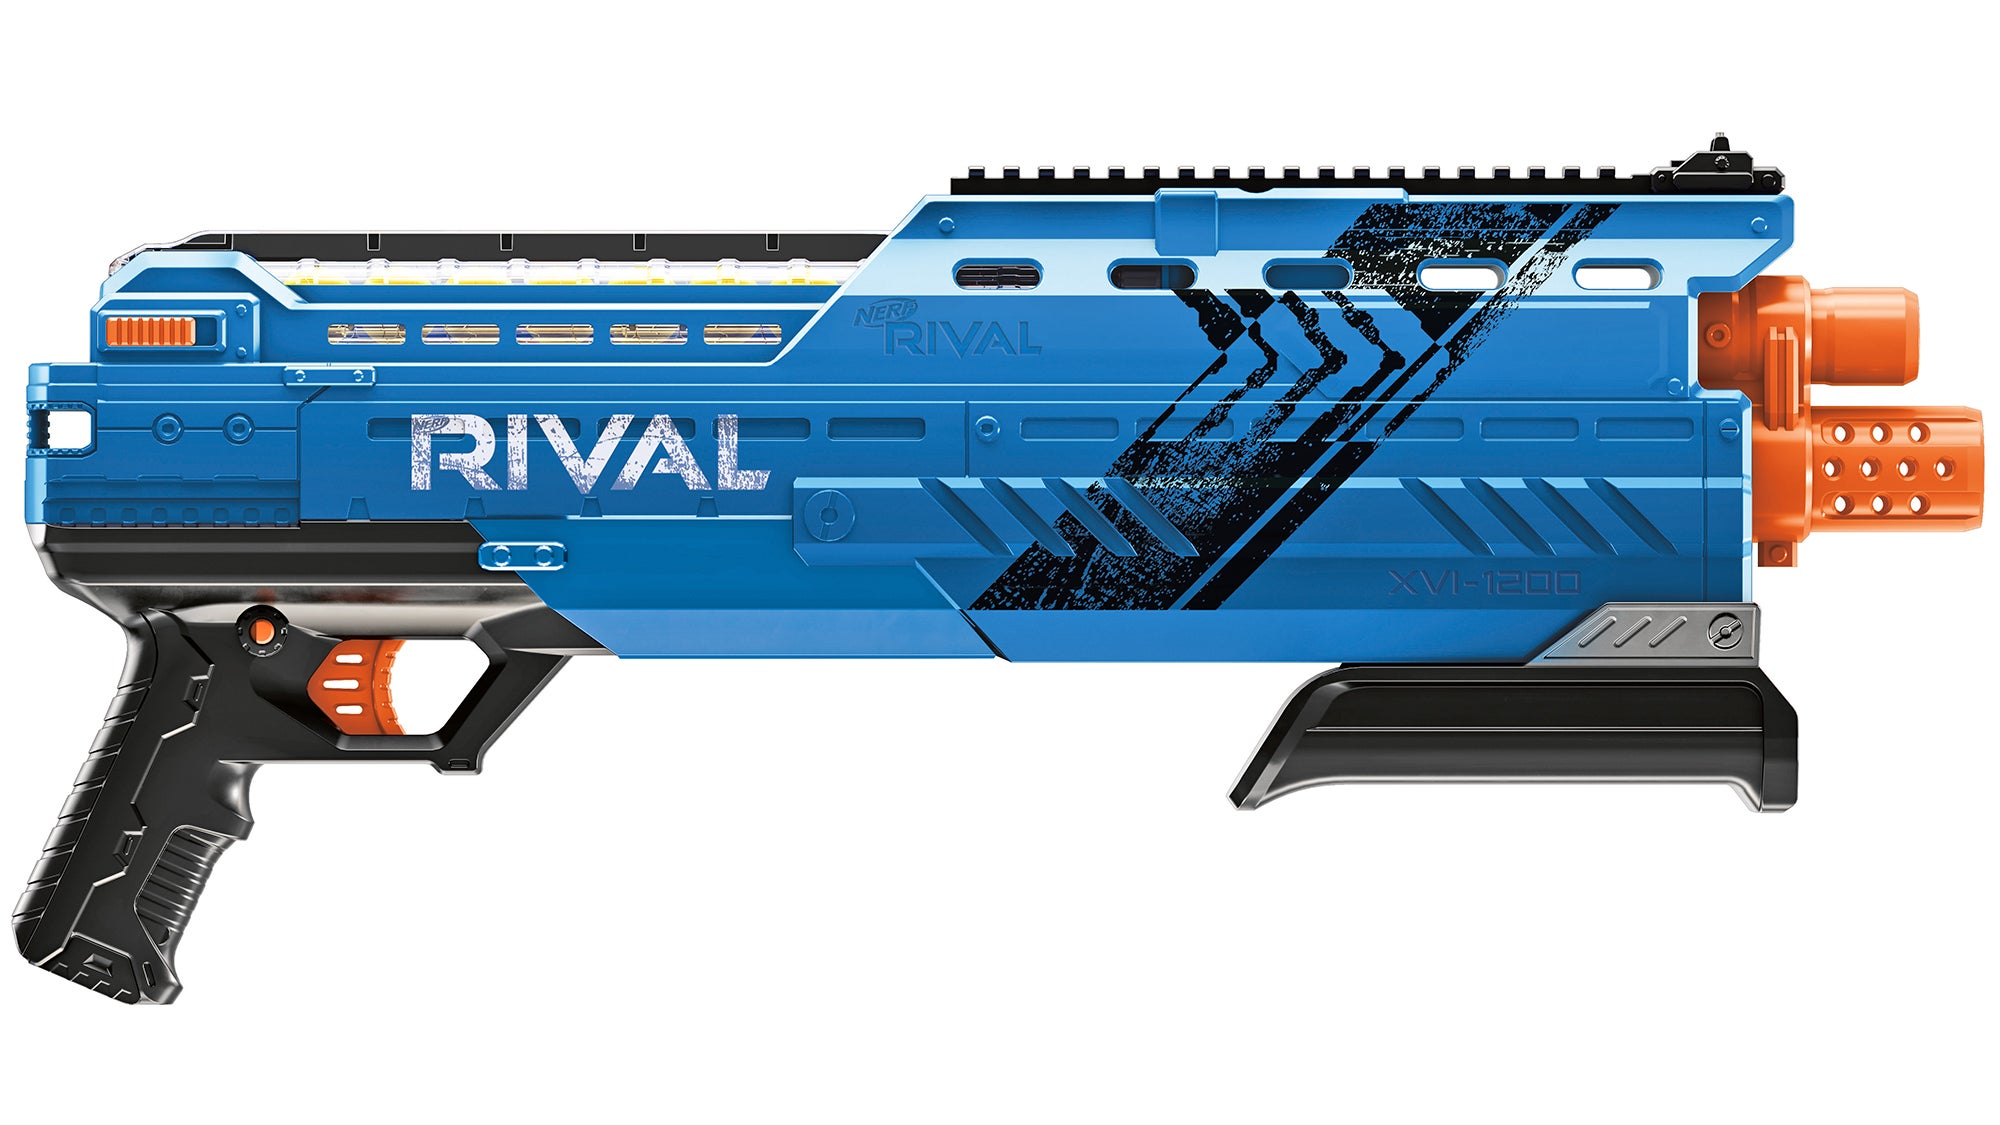 Nerf's Newest Rival Blaster Fires Two 113km/h Rounds With Every Pump